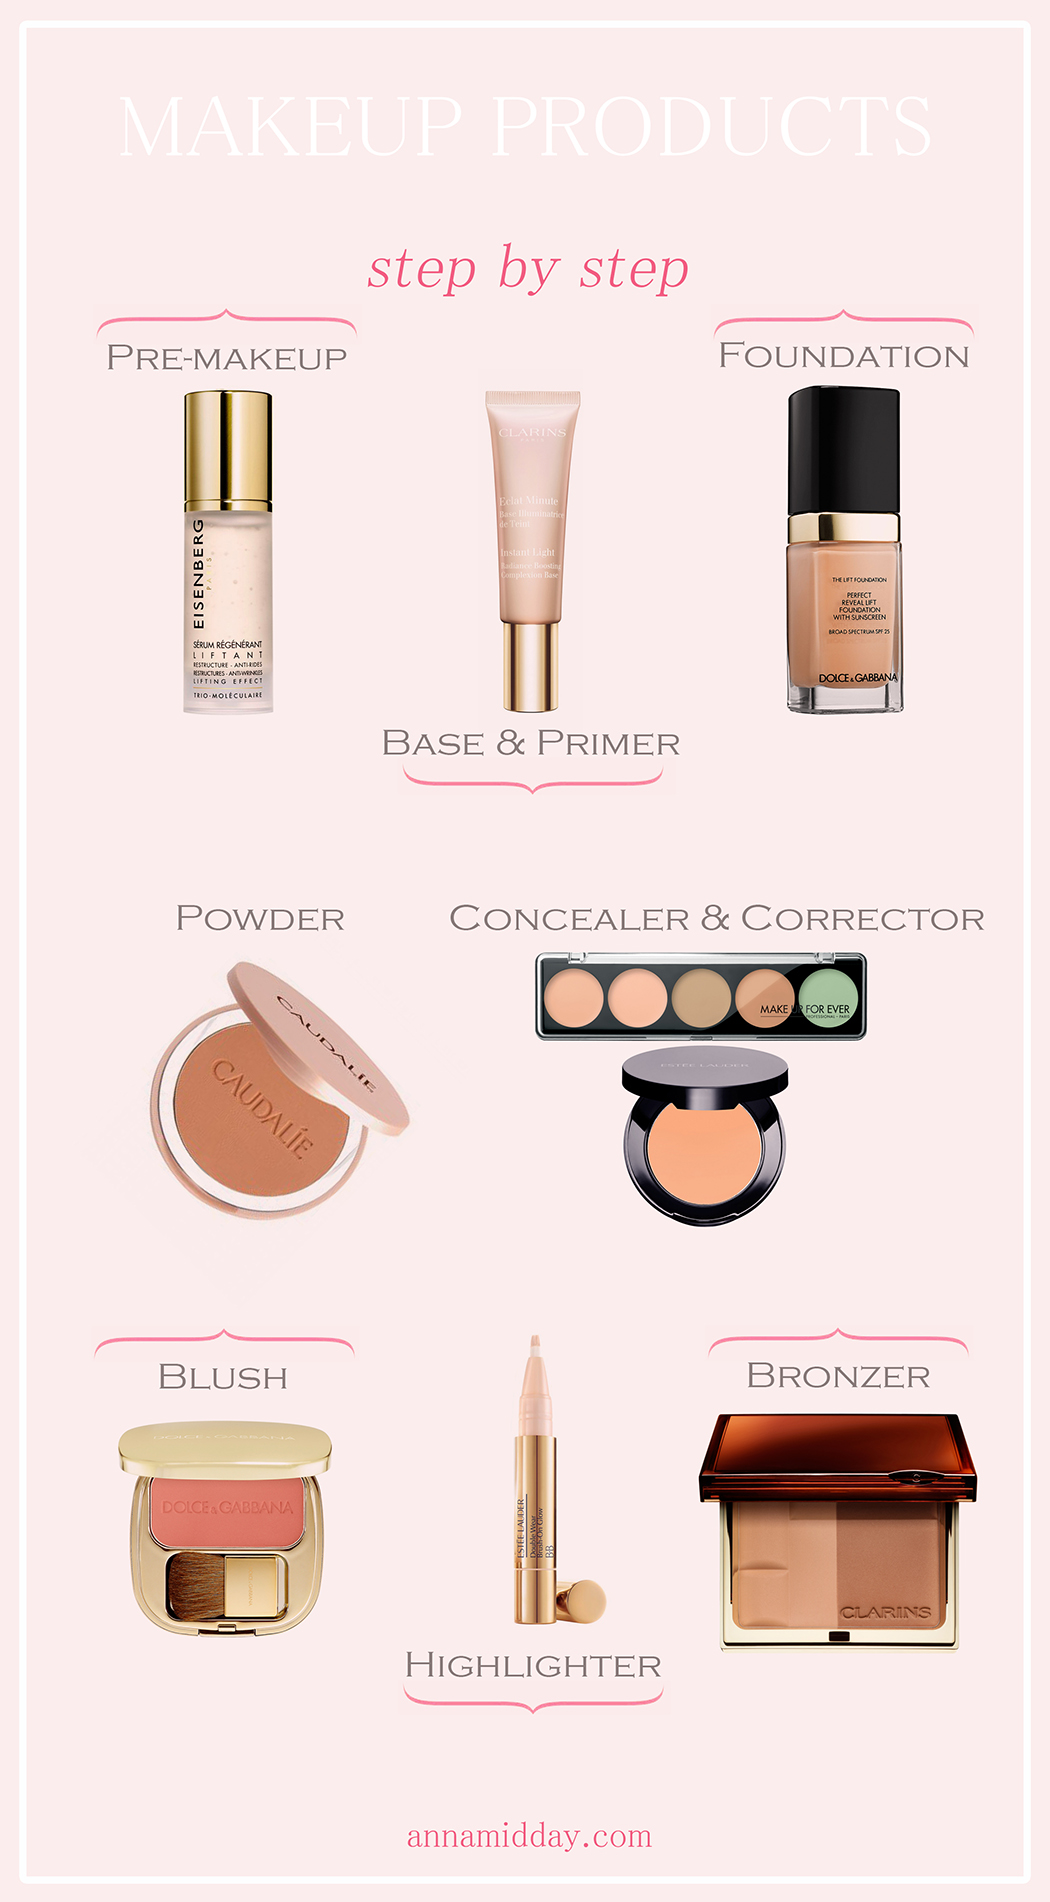 Clarins Bronzing Duo Mineral Powder Compact, Estee Lauder Double Wear Brush-On Glow BB Highlighter, Dolce&Gabbana The Blush Luminous Cheek Colour, Dolce&Gabbana Perfect Mono Cream Eye Colour, схема макияжа, скульптурирование лица, правила использования консилера, куда наносить консилер, Caudalie Mineral Bronzing Powder, Sothys Concealer Pencil, Clarins Instant Concealer, Estee Lauder Double Wear Stay-In-Place High Cover Concealer, Tom Ford Concealing Pen, косметика, макияж, правила макияжа, как наносить хайлайтер, как наносить корректор, корректоры цвета, как наносить тональный крем, как наносить праймер, правила скульптурирования лица, make up hacks, Payot Eclat Du Regard, Clarins Instant Light Brush-On Perfector, Dolce&Gabbana Perfect Reveal Lift Foundation, как замаскировать прыщик, Caudalie Vinoperfect Radiance Tinted Moisturizer, Make Up For Ever Ultra HD Invisible Cover Foundation, секреты макияжа, make up tutorial, concealer guide, primer guide, foundation guide, contour tutorial, YSL Touche Eclat Blur Primer, Clarins Instant Light Eye Perfecting Base, Make Up For Ever Step 1 Skin Equalizer Hydrating Base, Clarins Instant Light Radiance Boosting Complexion Base, Payot Super Base, Payot Skin-Perfecting Illuminating Serum, Caudalie Make-Up Removing Cleansing Oil, Eisenberg Lifting Regenerating Serum, Eisenberg Anti-Stress Treatment, Sothys Instant Energizing Corrector, Caudalie Vinoperfect Radiance Serum, YSL Forever Light Creator Dark Circle Corrector, схема макияжа лица, inspiration, annamidday, top beauty blogger, top russian beauty blogger, бьюти блогер, русский блогер, известный блогер, топовый блогер, russian bloger, top russian blogger, russian beauty blogger, blogger, российский блогер, ТОП блогер, популярный блогер, beauty tips, тренды в макияже 2015, новинки косметики 2015, анна миддэй, анна мидэй, бьюти блогер, русский бьюти блогер